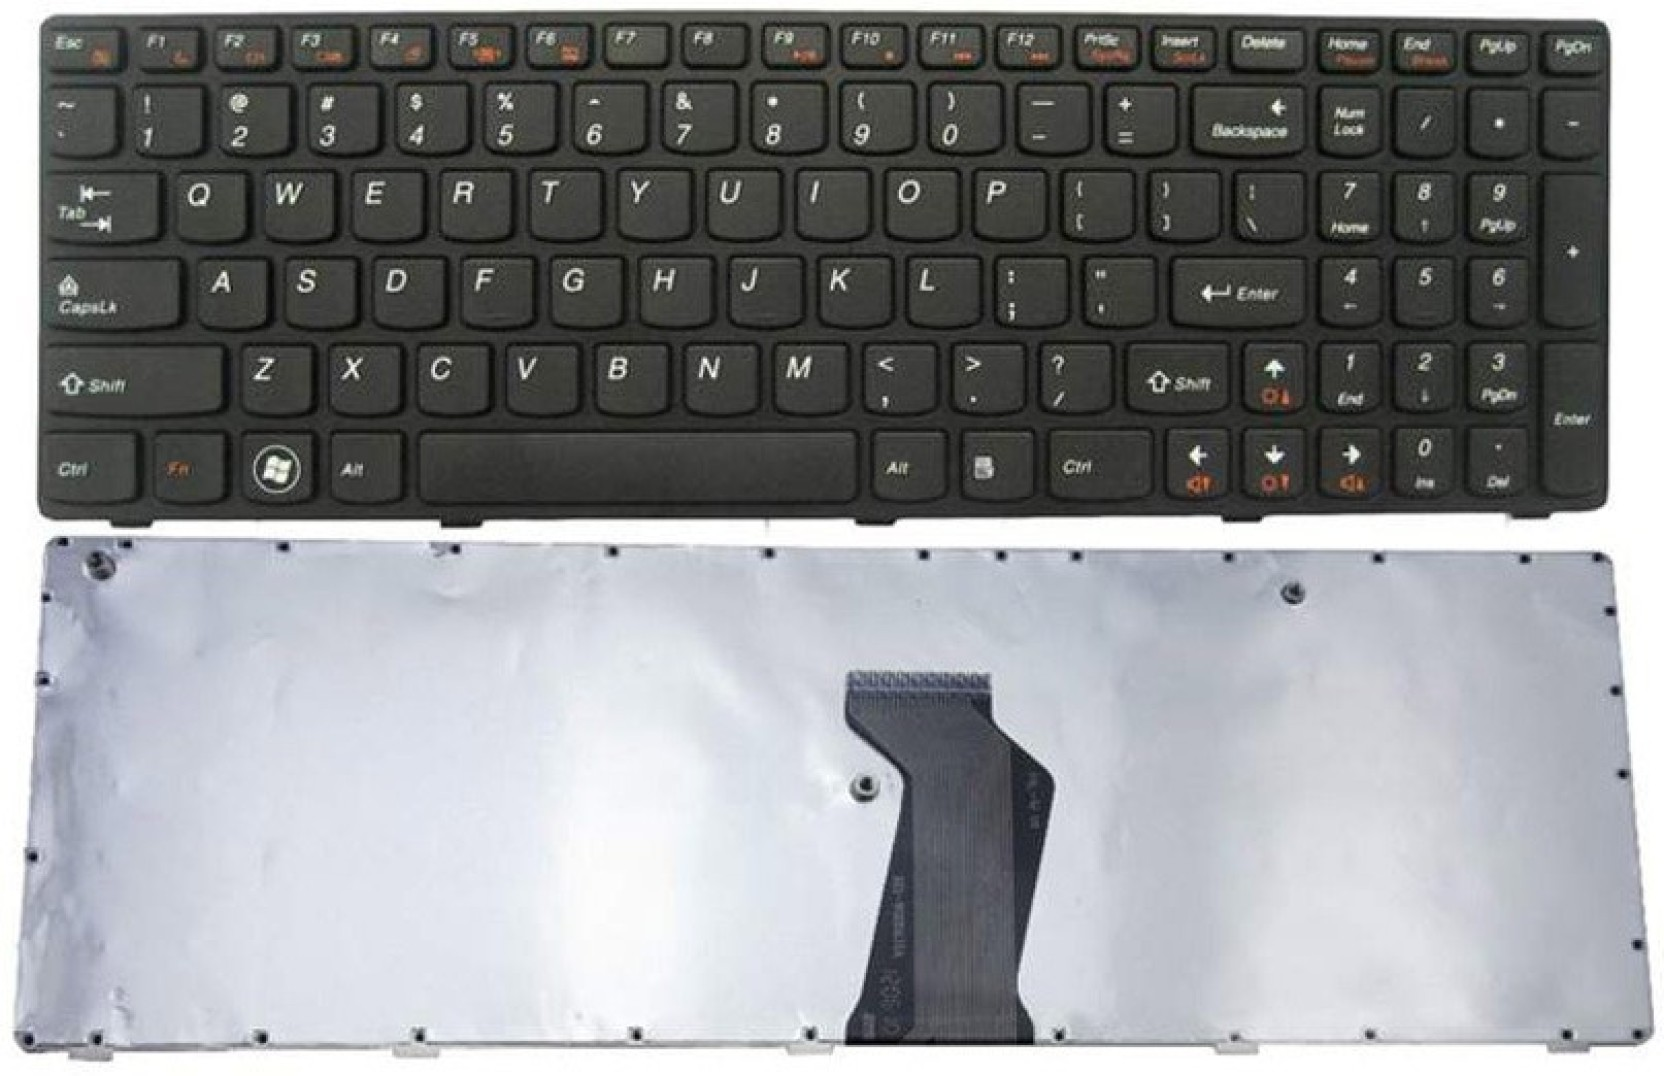 LENOVO G570 KEYBOARD WINDOWS 8.1 DRIVERS DOWNLOAD